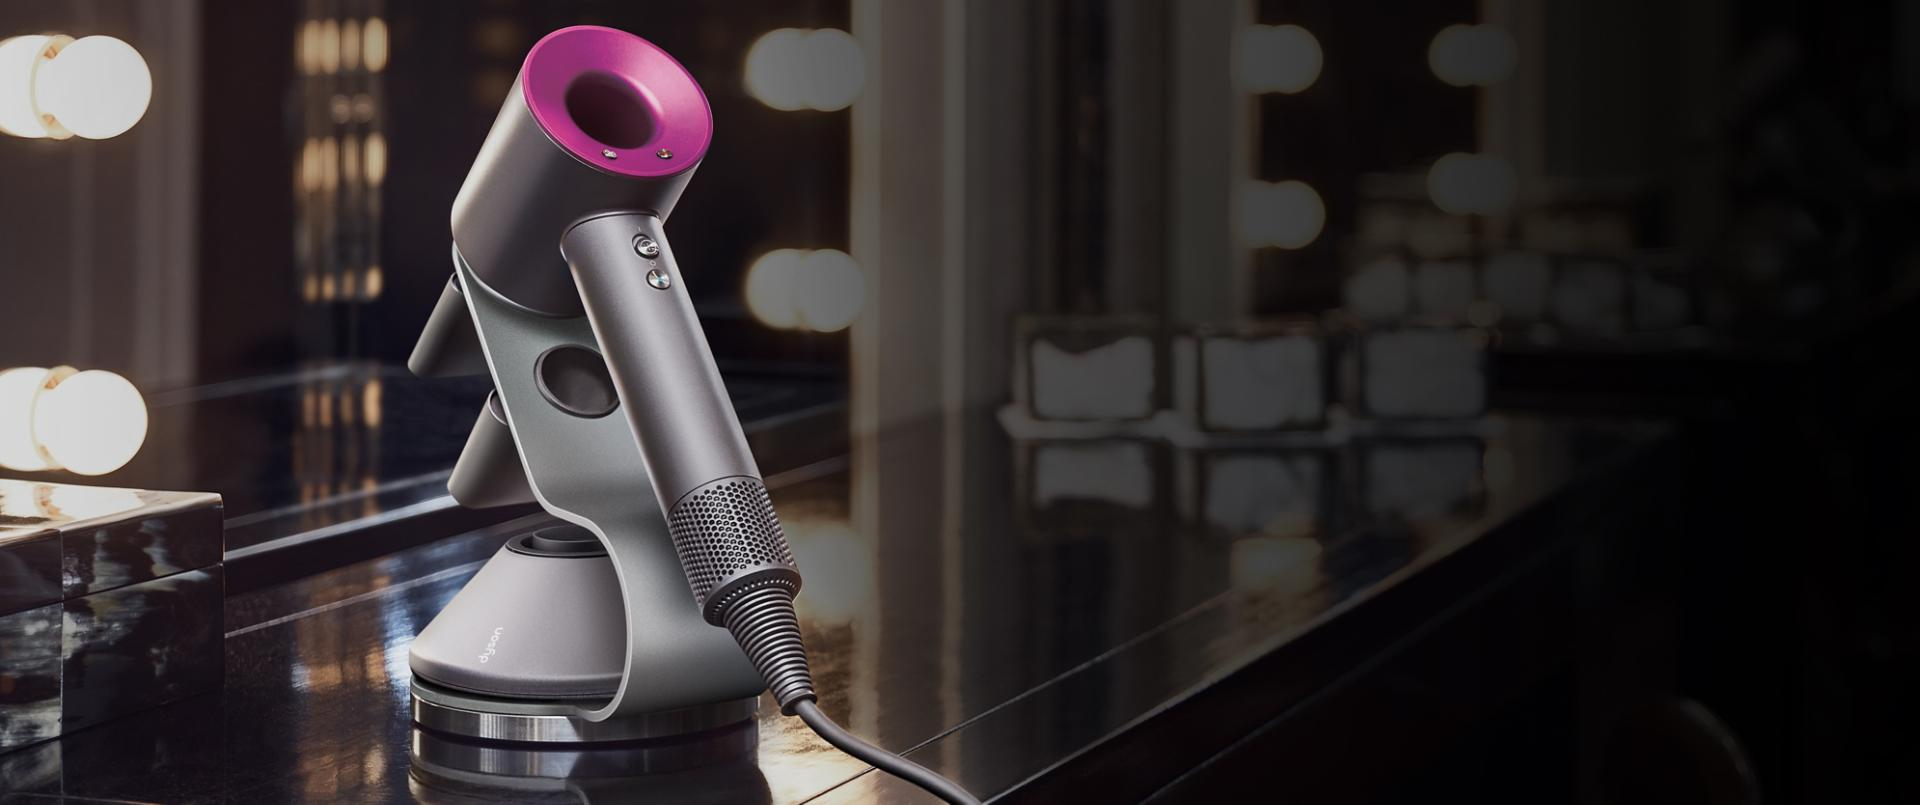 Dyson Supersonic hair dryer on hotel stand